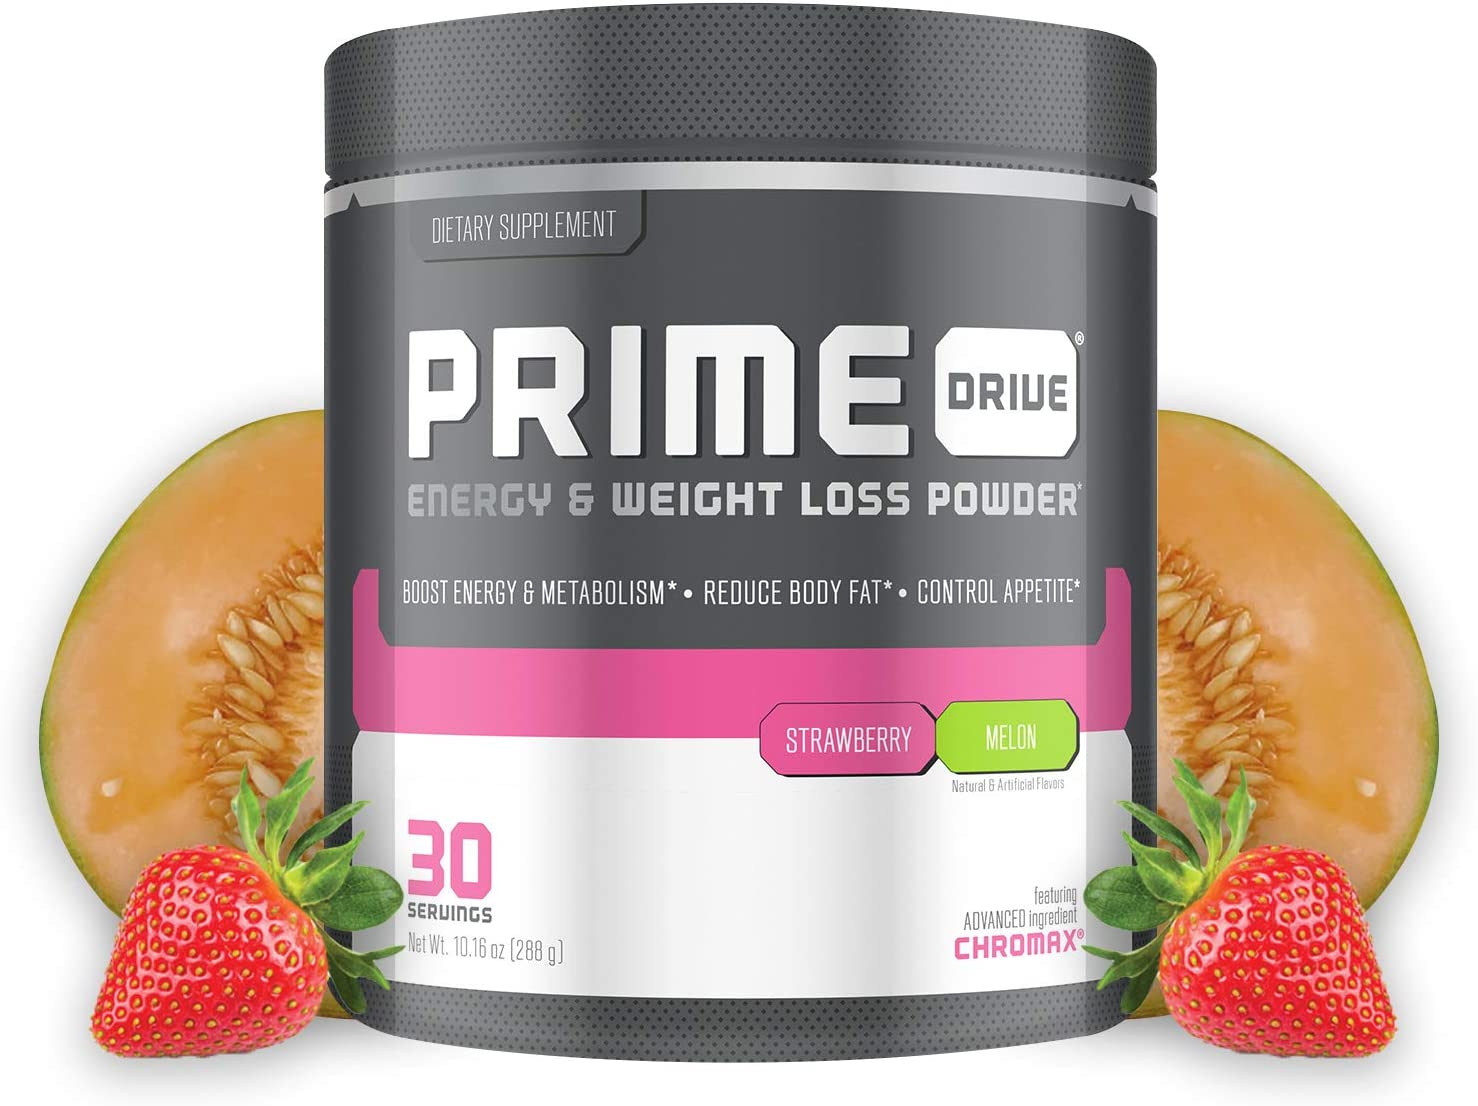 Complete Nutrition Prime Drive Energy Weight Loss Powder, Strawberry Melon, Increase Energy, Boost Metabolism, Fat Burner, Appetite Suppressant, 10.16oz 30 Servings